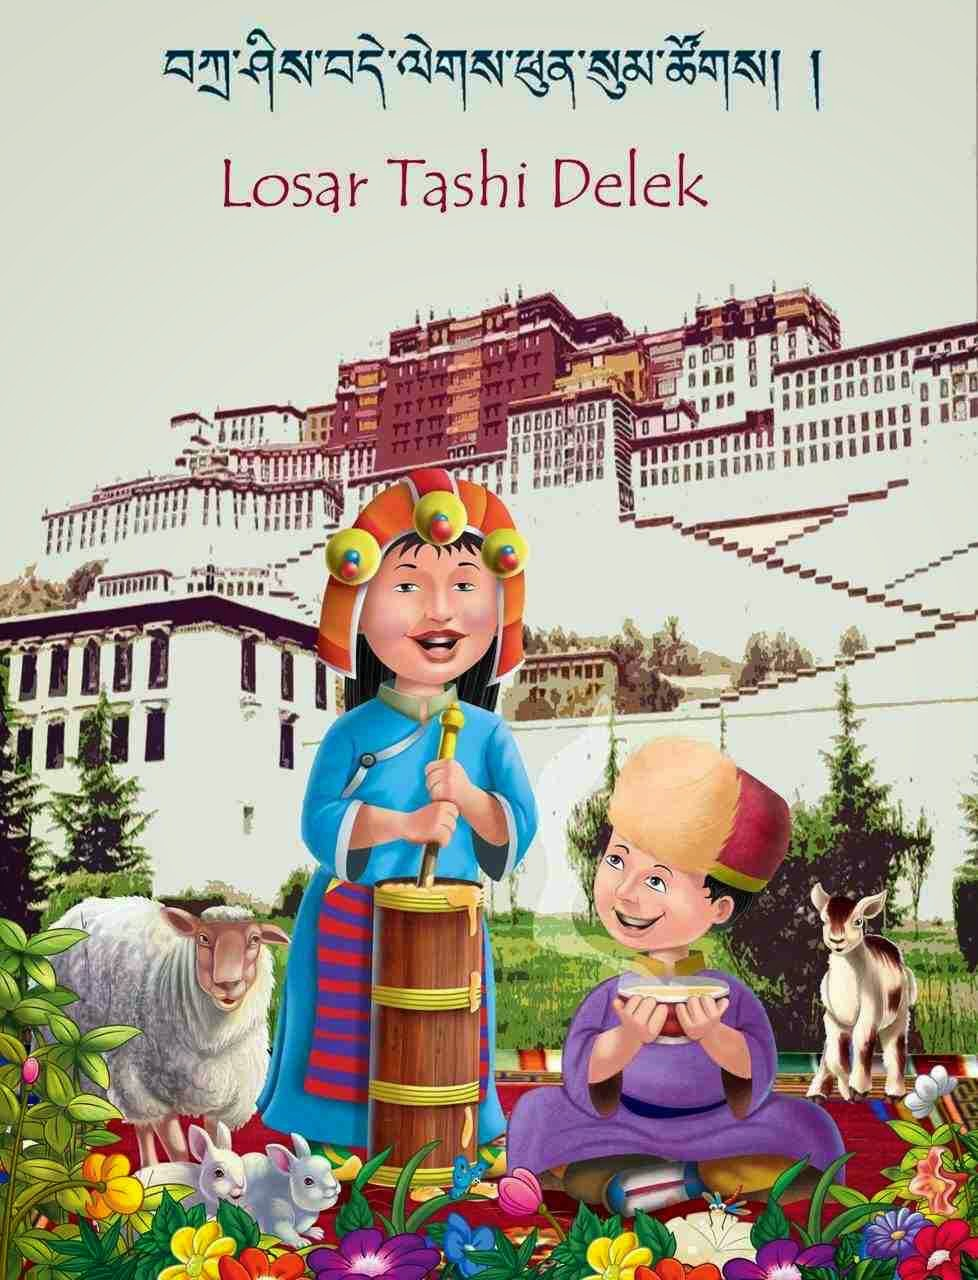 Wishing you all a happy Losar